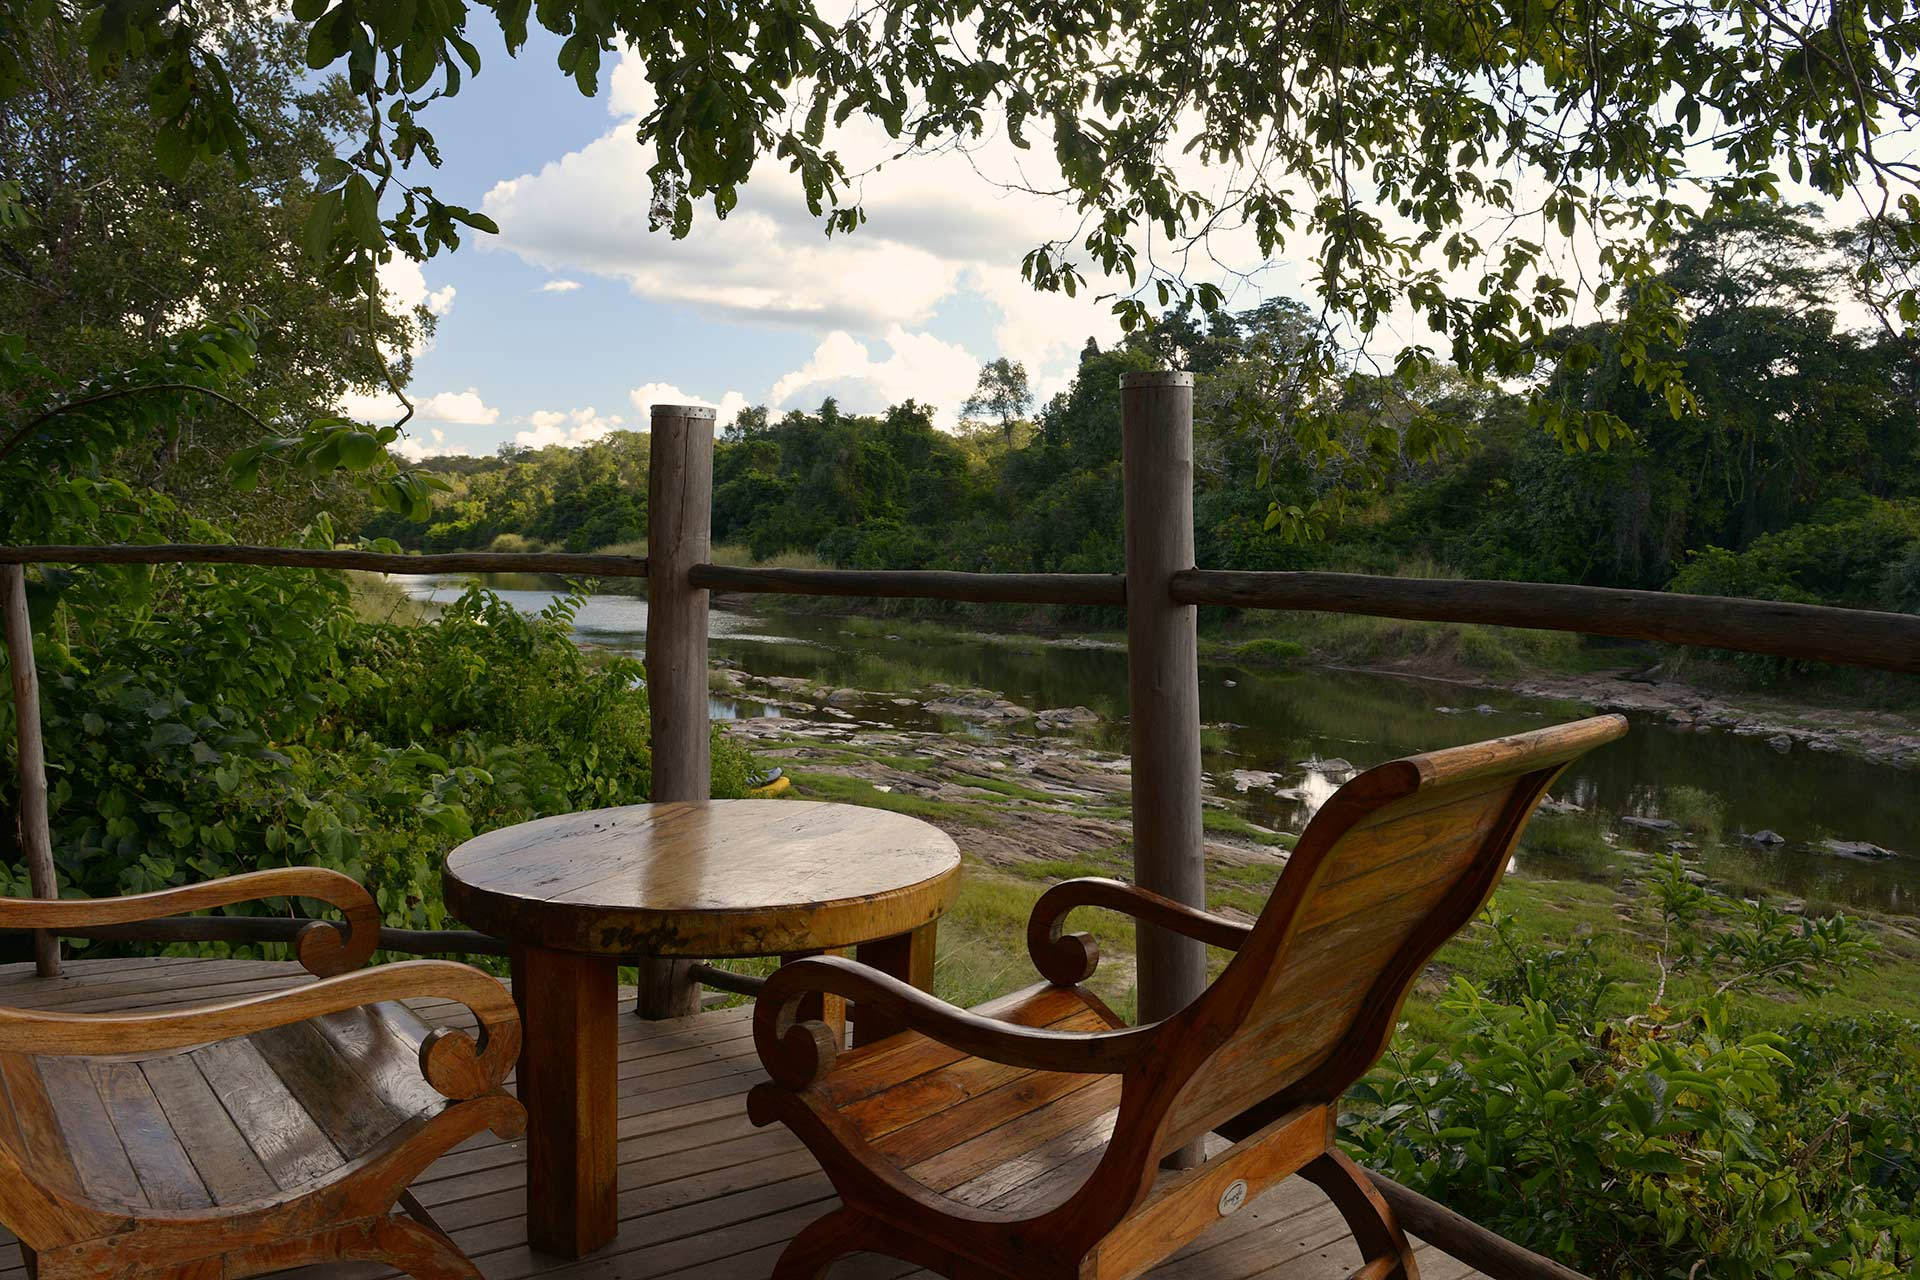 Luxury accommodation malawi tongole wilderness lodge for Balcony underside